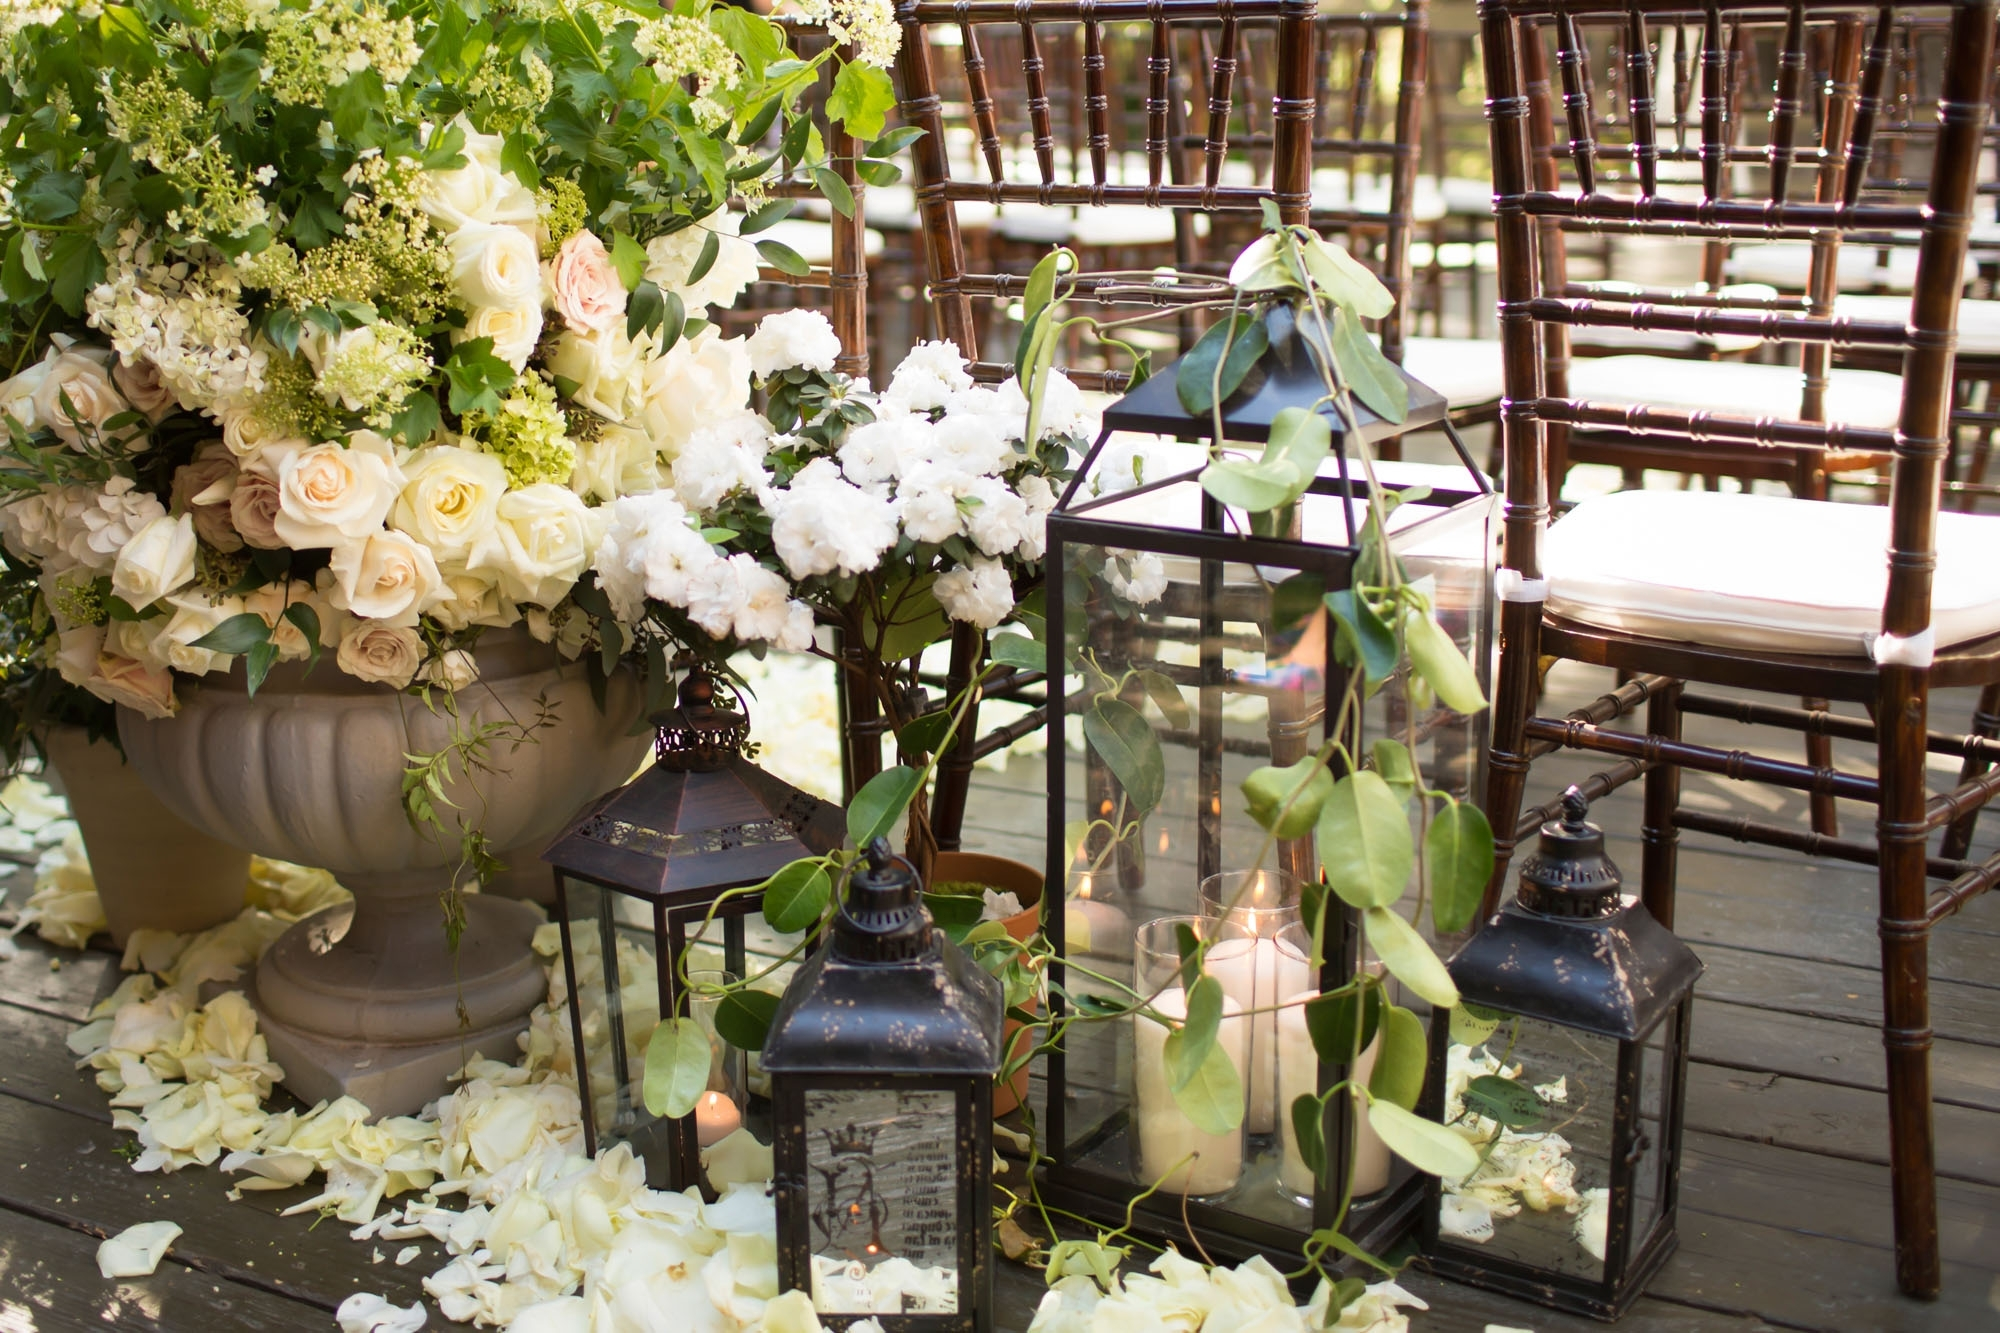 Well Known Outdoor Lanterns For Wedding Within Wedding Ideas: Decorating With Lanterns – Inside Weddings (View 18 of 20)